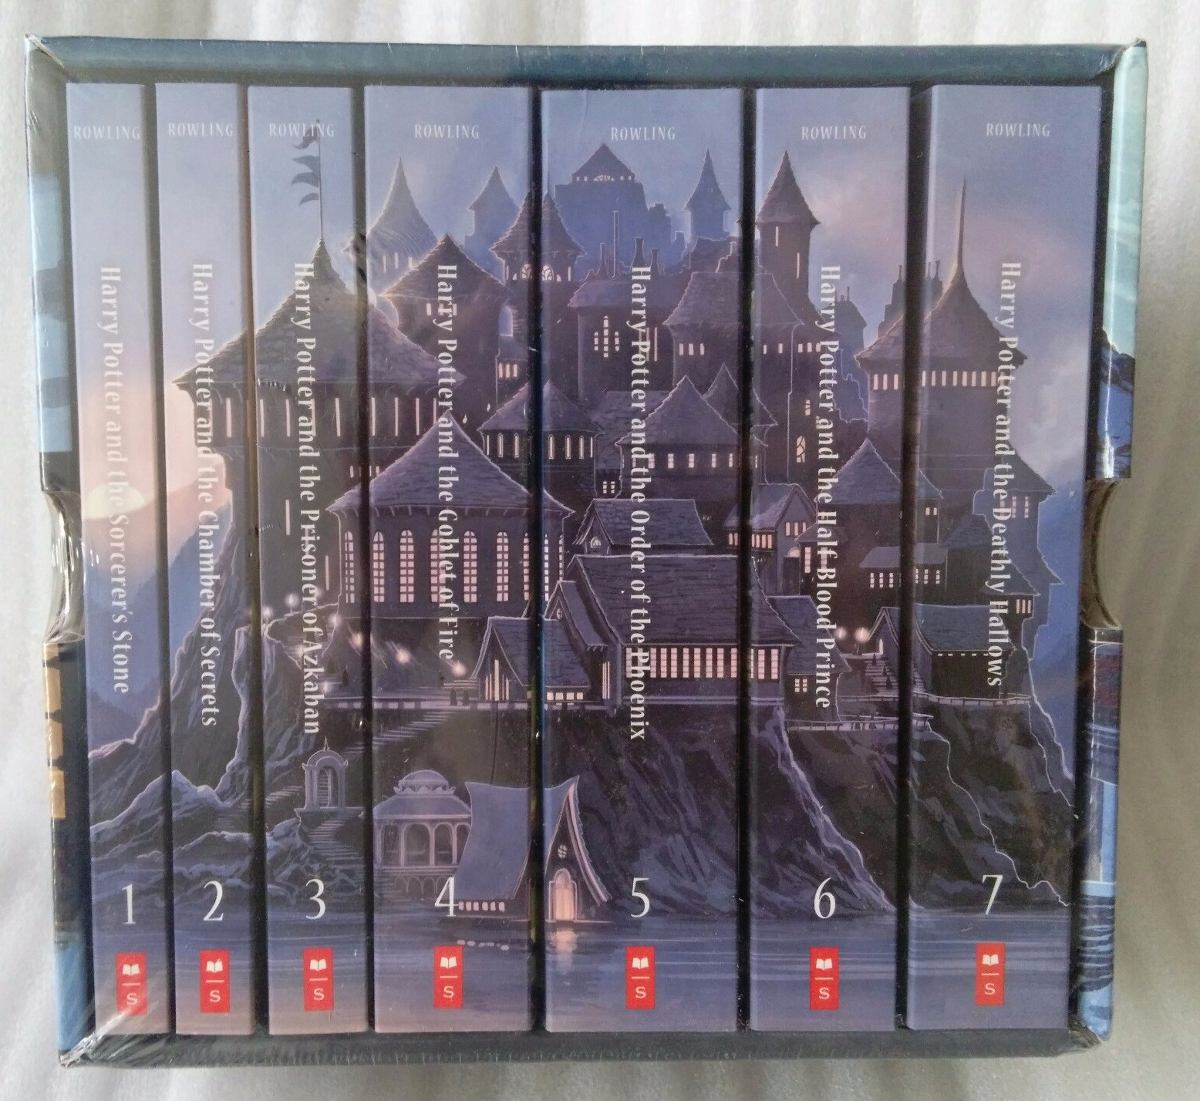 Comprar Libros De Harry Potter Harry Potter Box Set Libros Colección Castillo Hogwarts